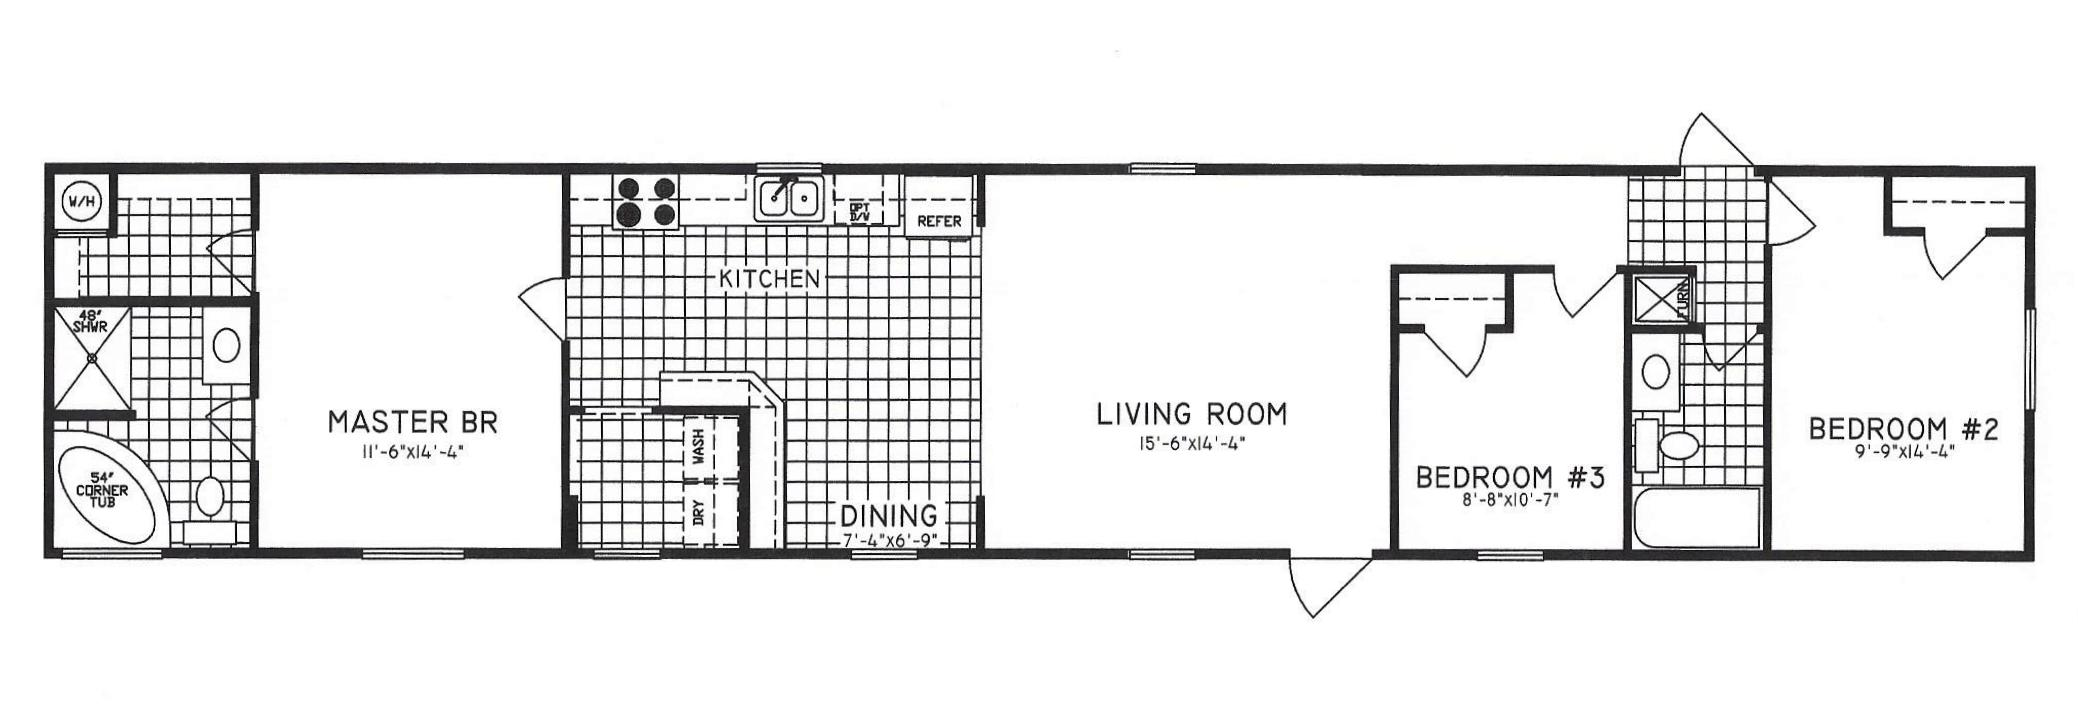 3 bedroom floor plan c 9719 hawks homes manufactured 3 bedroom modular home floor plans